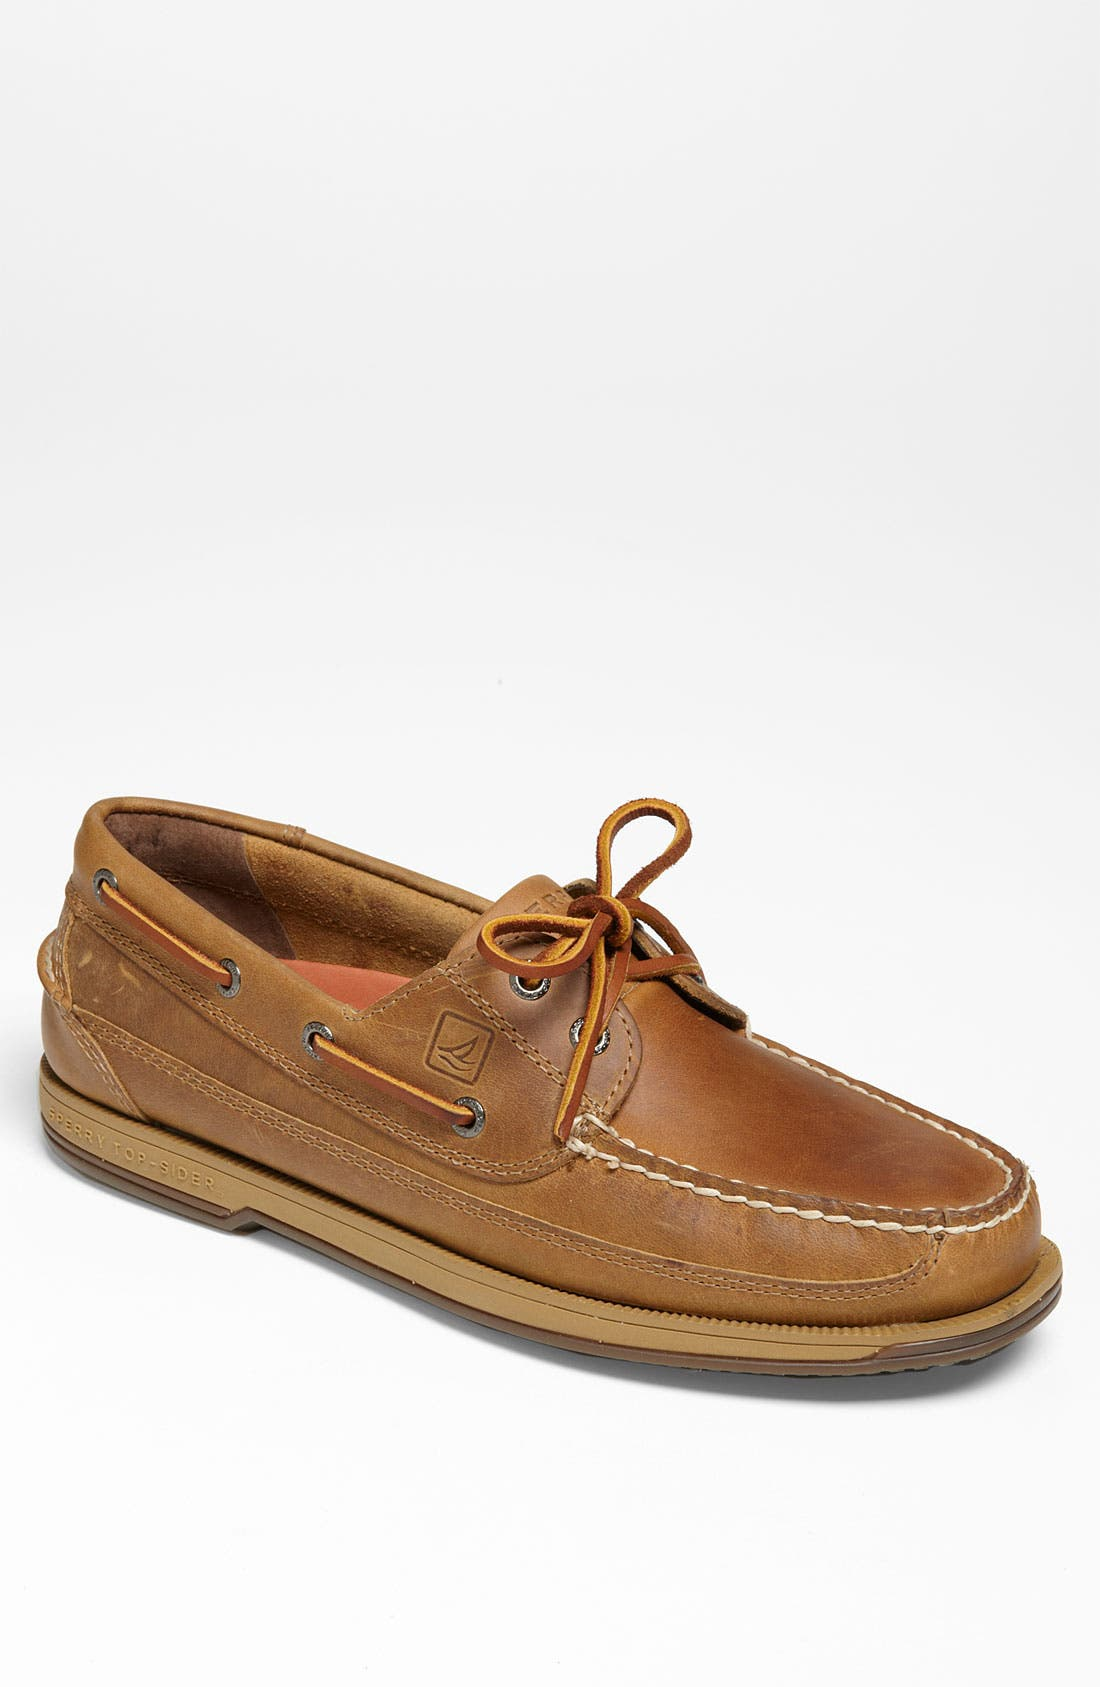 Main Image - Sperry Top-Sider® 'Mariner II' Boat Shoe